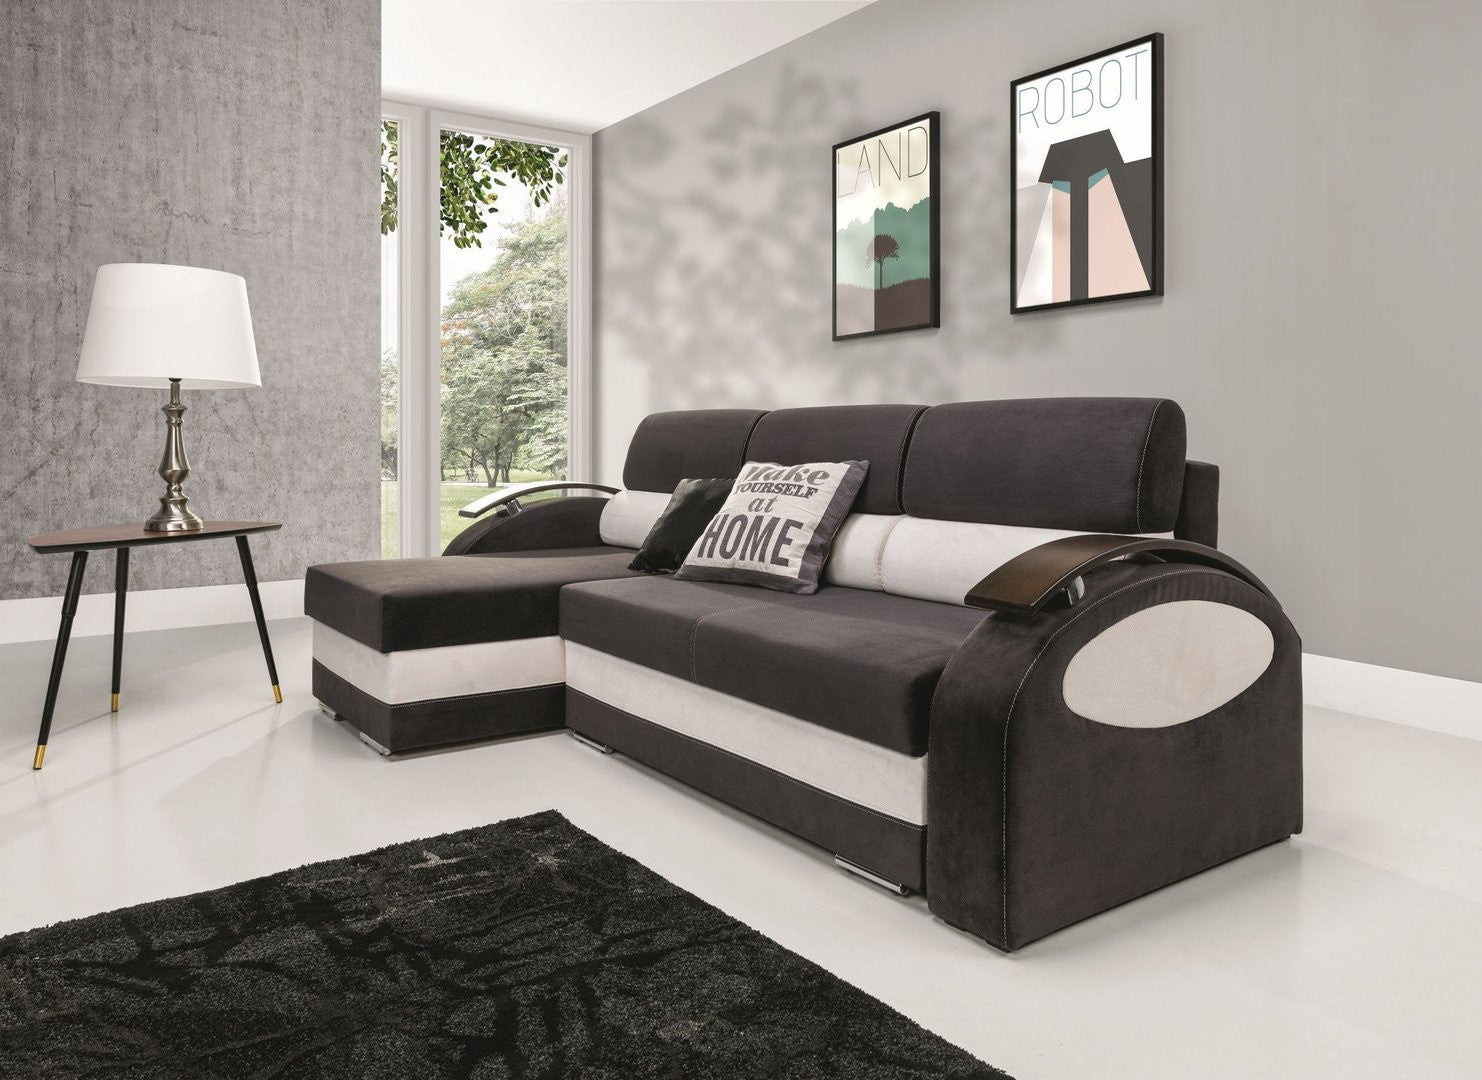 corner sofa bed greta-12 months free credit available online